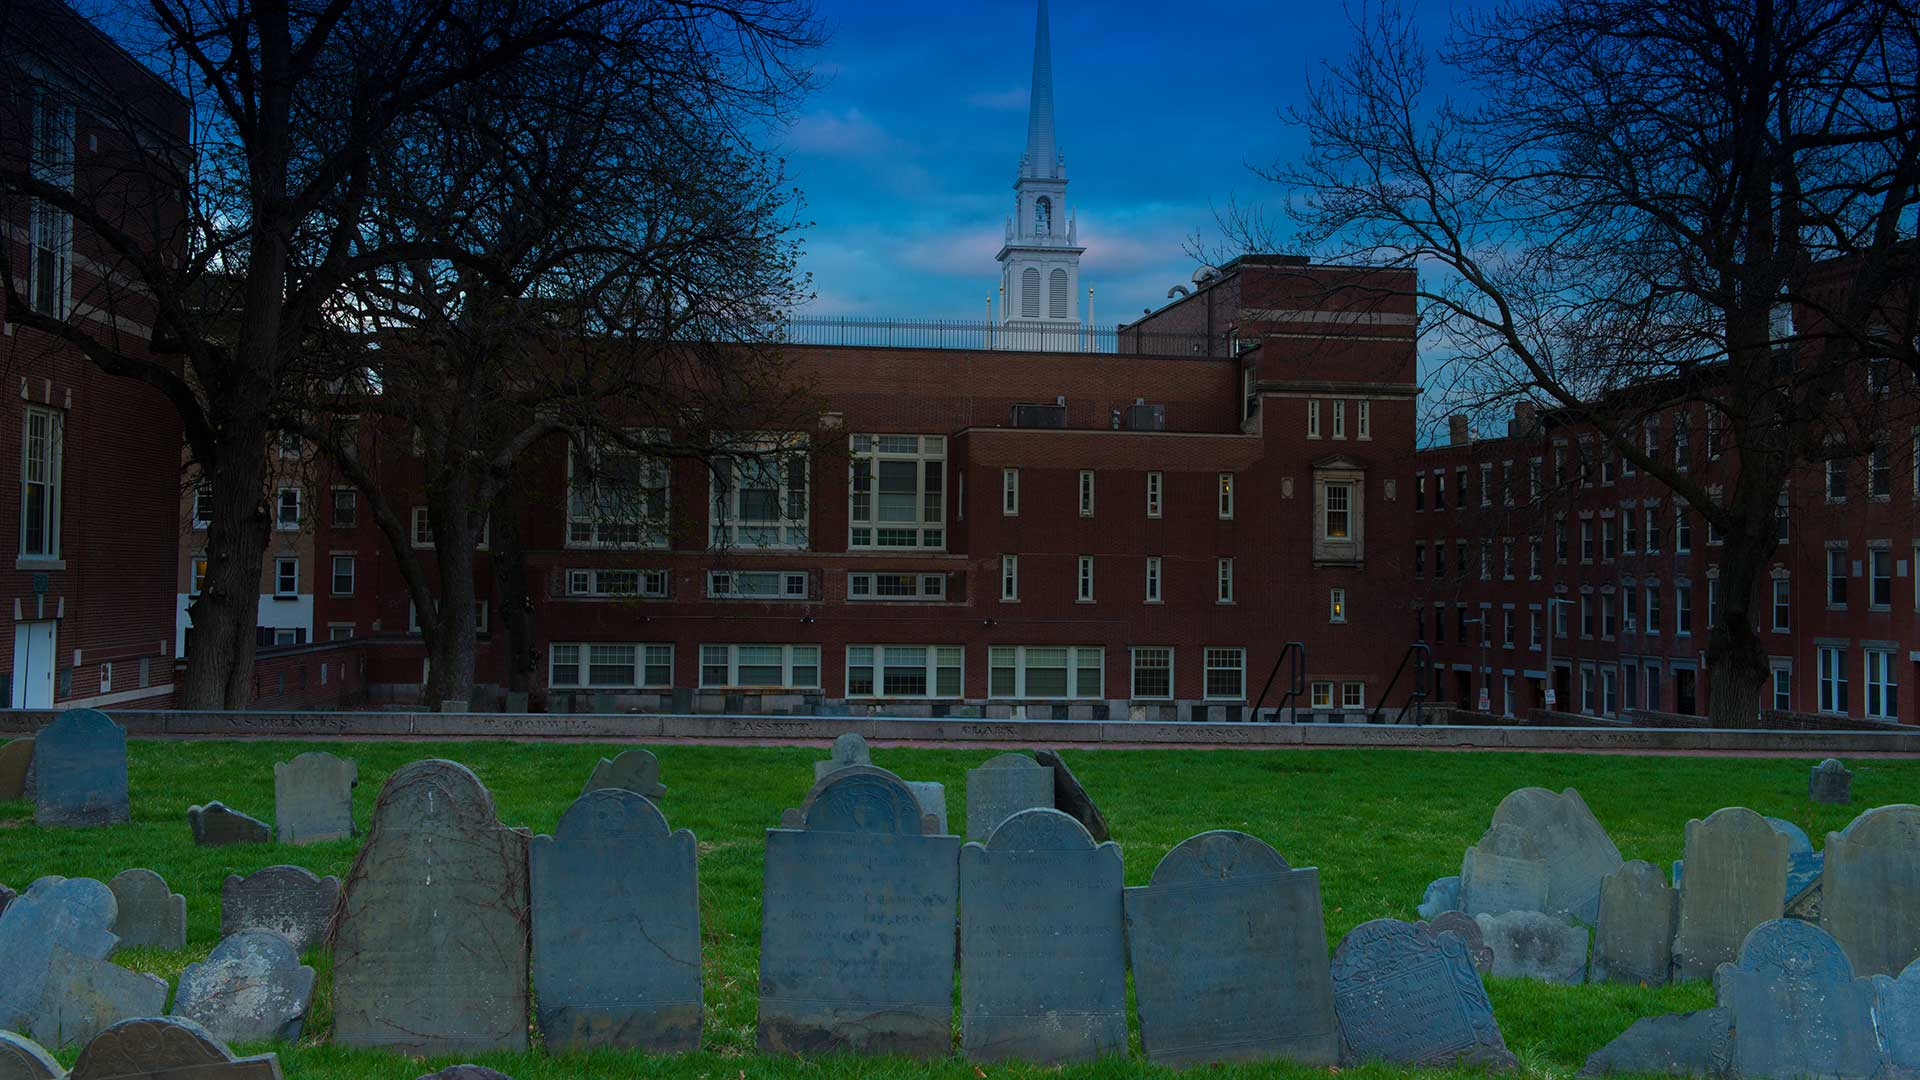 copps hill burying ground at night boston